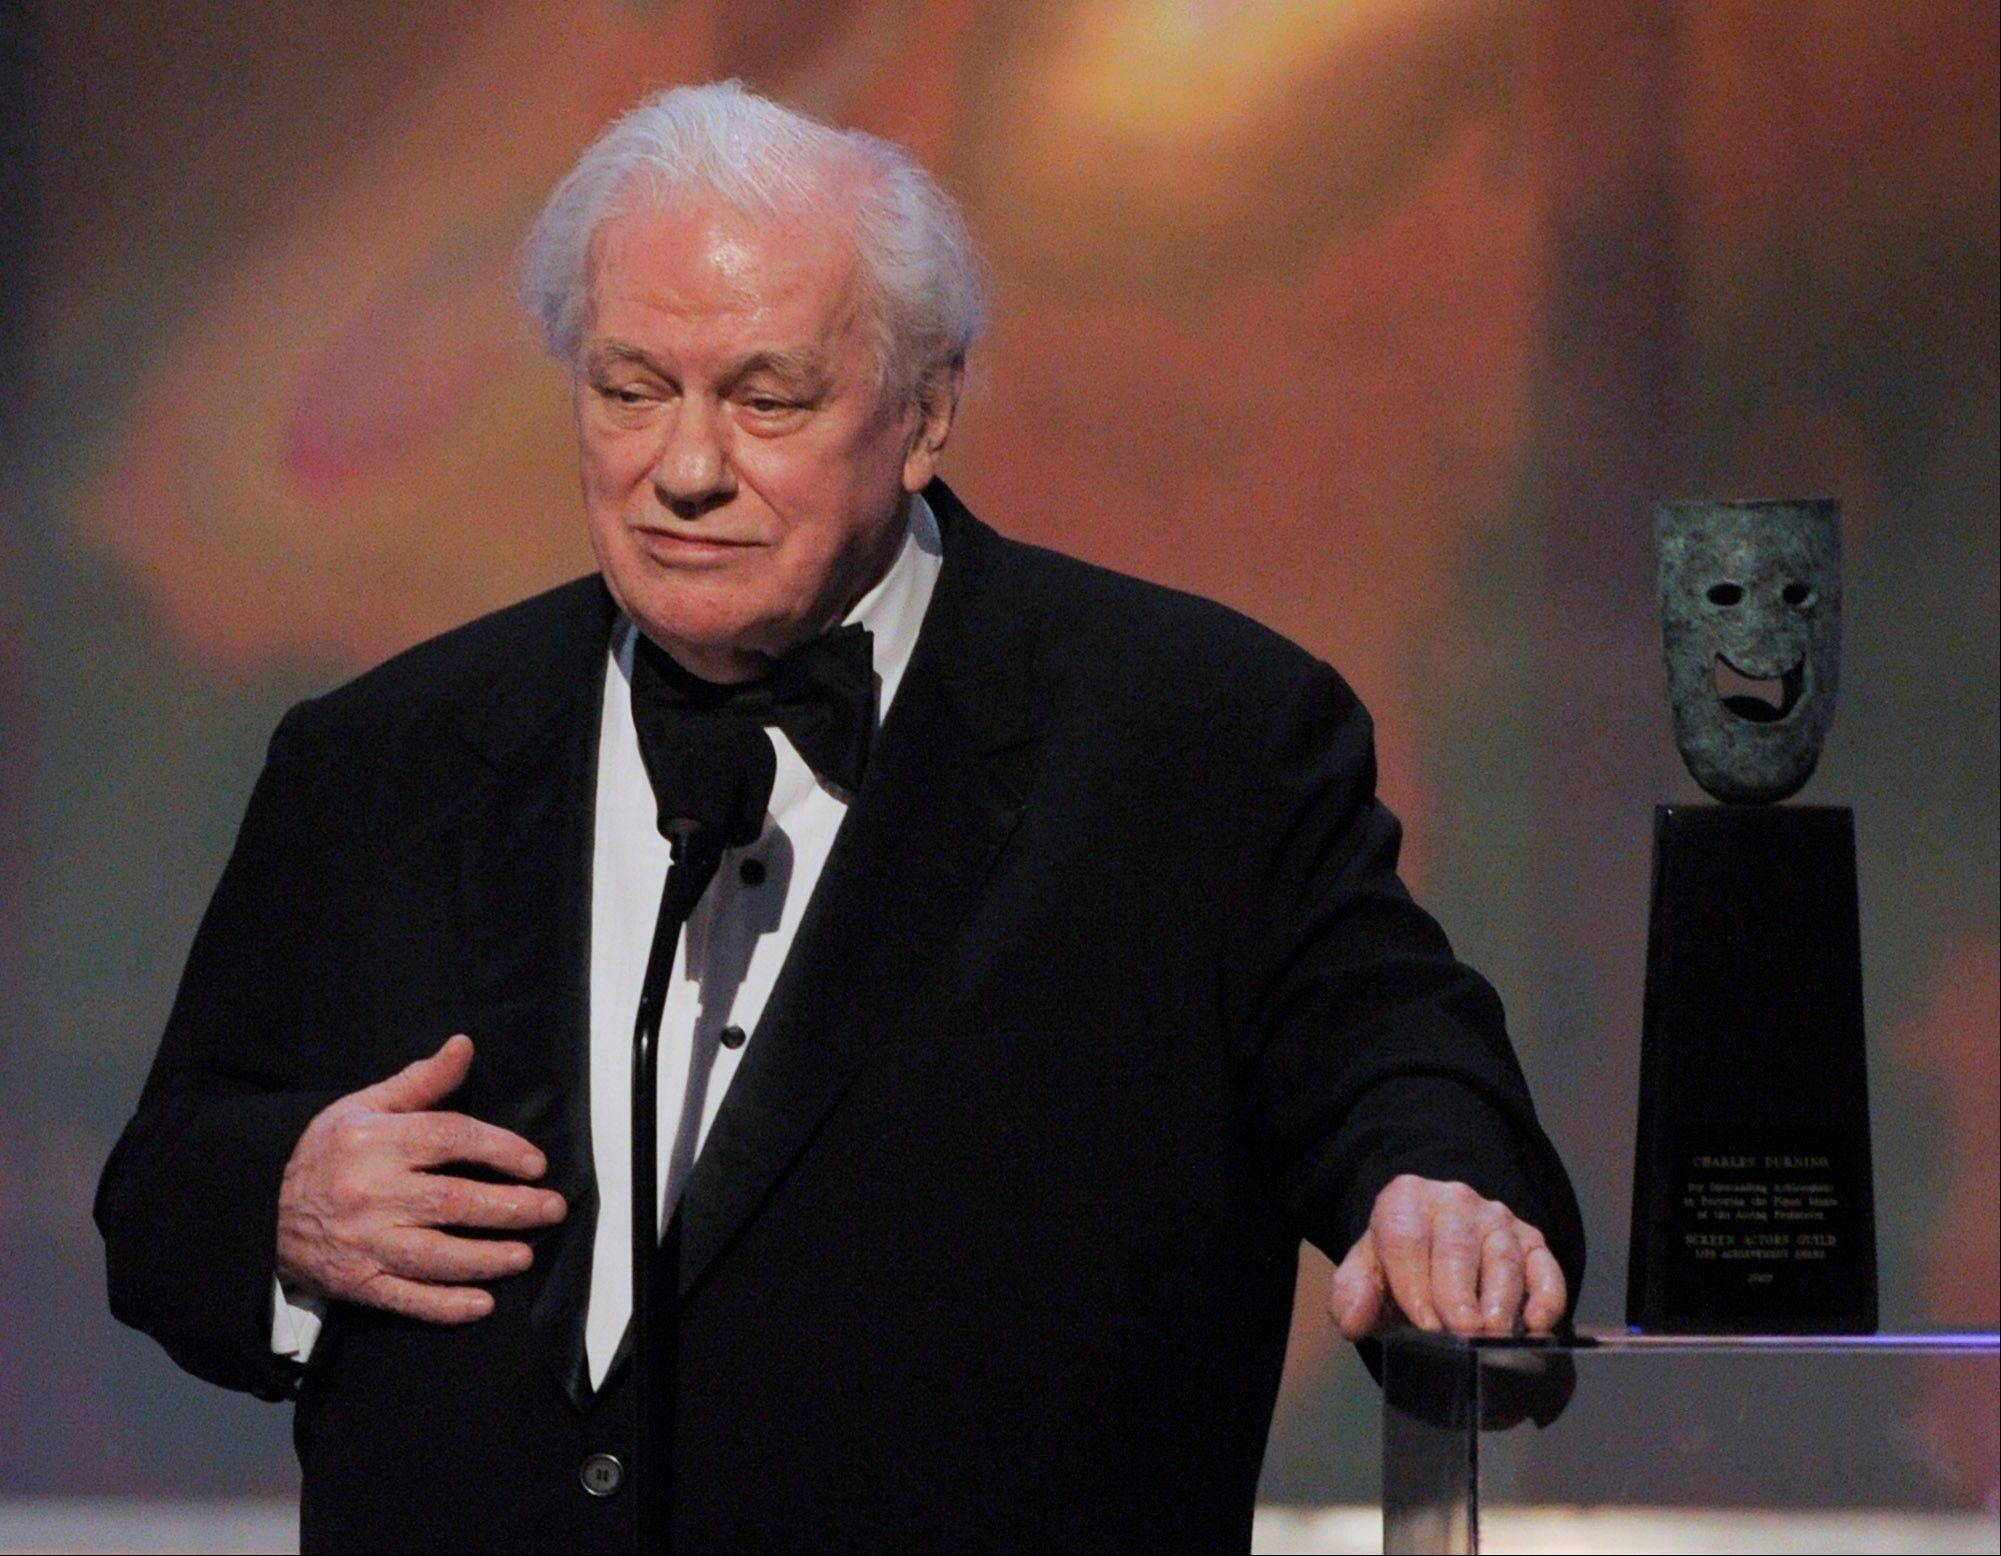 Actor Charles Durning accepts the life achievement award at the 14th Annual Screen Actors Guild Awards. Durning, the two-time Oscar nominee who was dubbed the king of the character actors for his skill in playing everything from a Nazi colonel to the pope, died Monday, Dec. 24, 2012 at his home in New York City. He was 89.